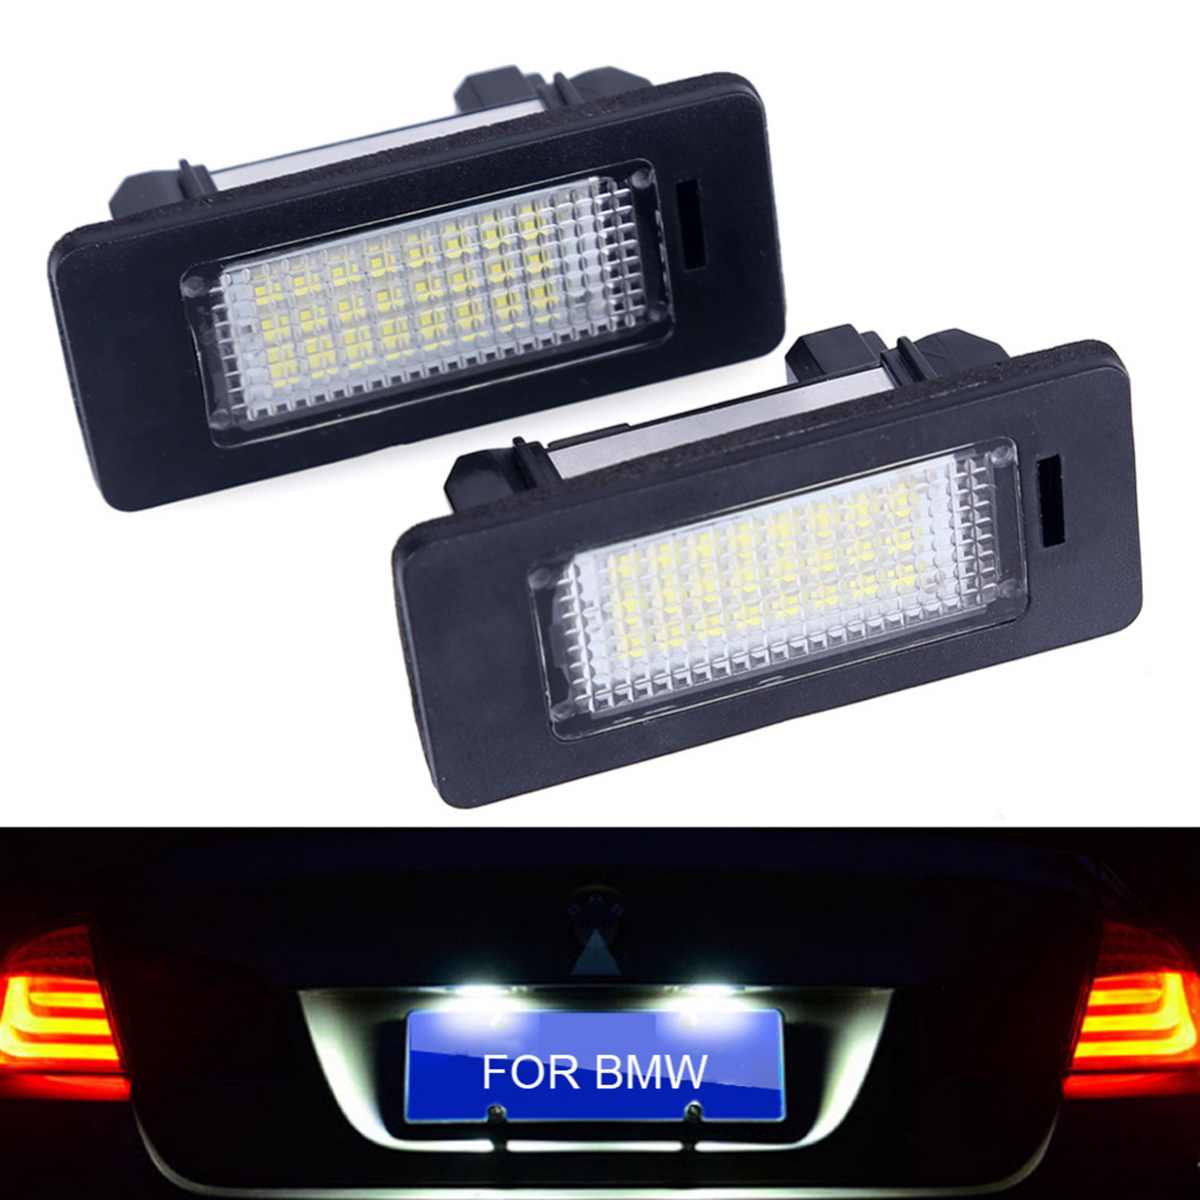 2Pcs/Set Error Free White 18SMD LED Number License Plate Lights For BMW E39 E70 E71 X5 X6 E60 M5 E90 E92 E93 M3 License Lamp